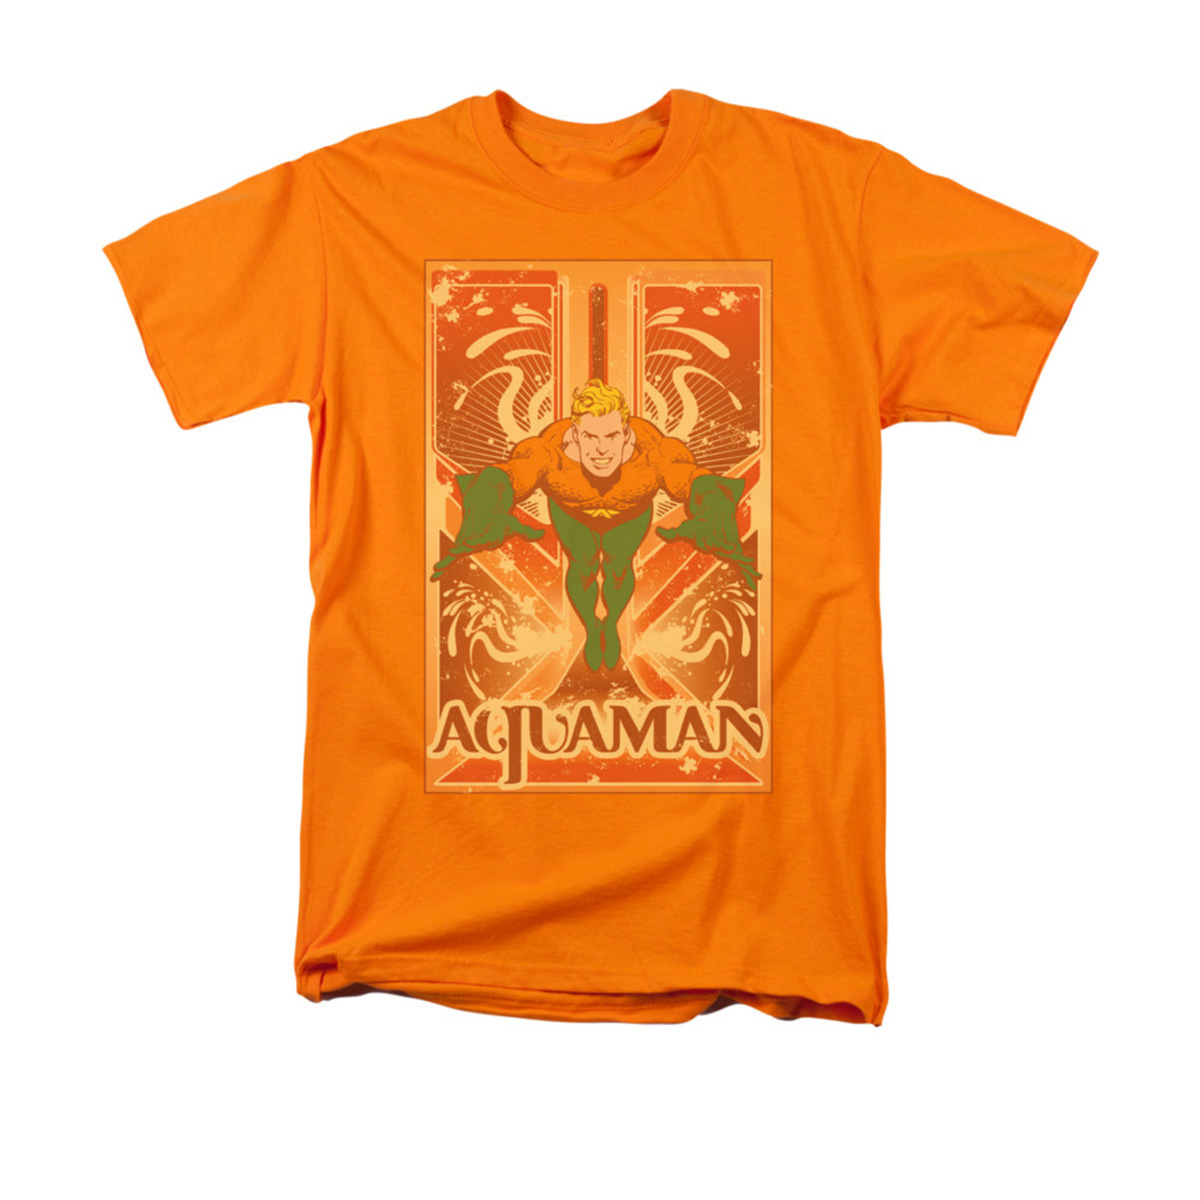 Sheldon's Orange Aquaman T-shirt